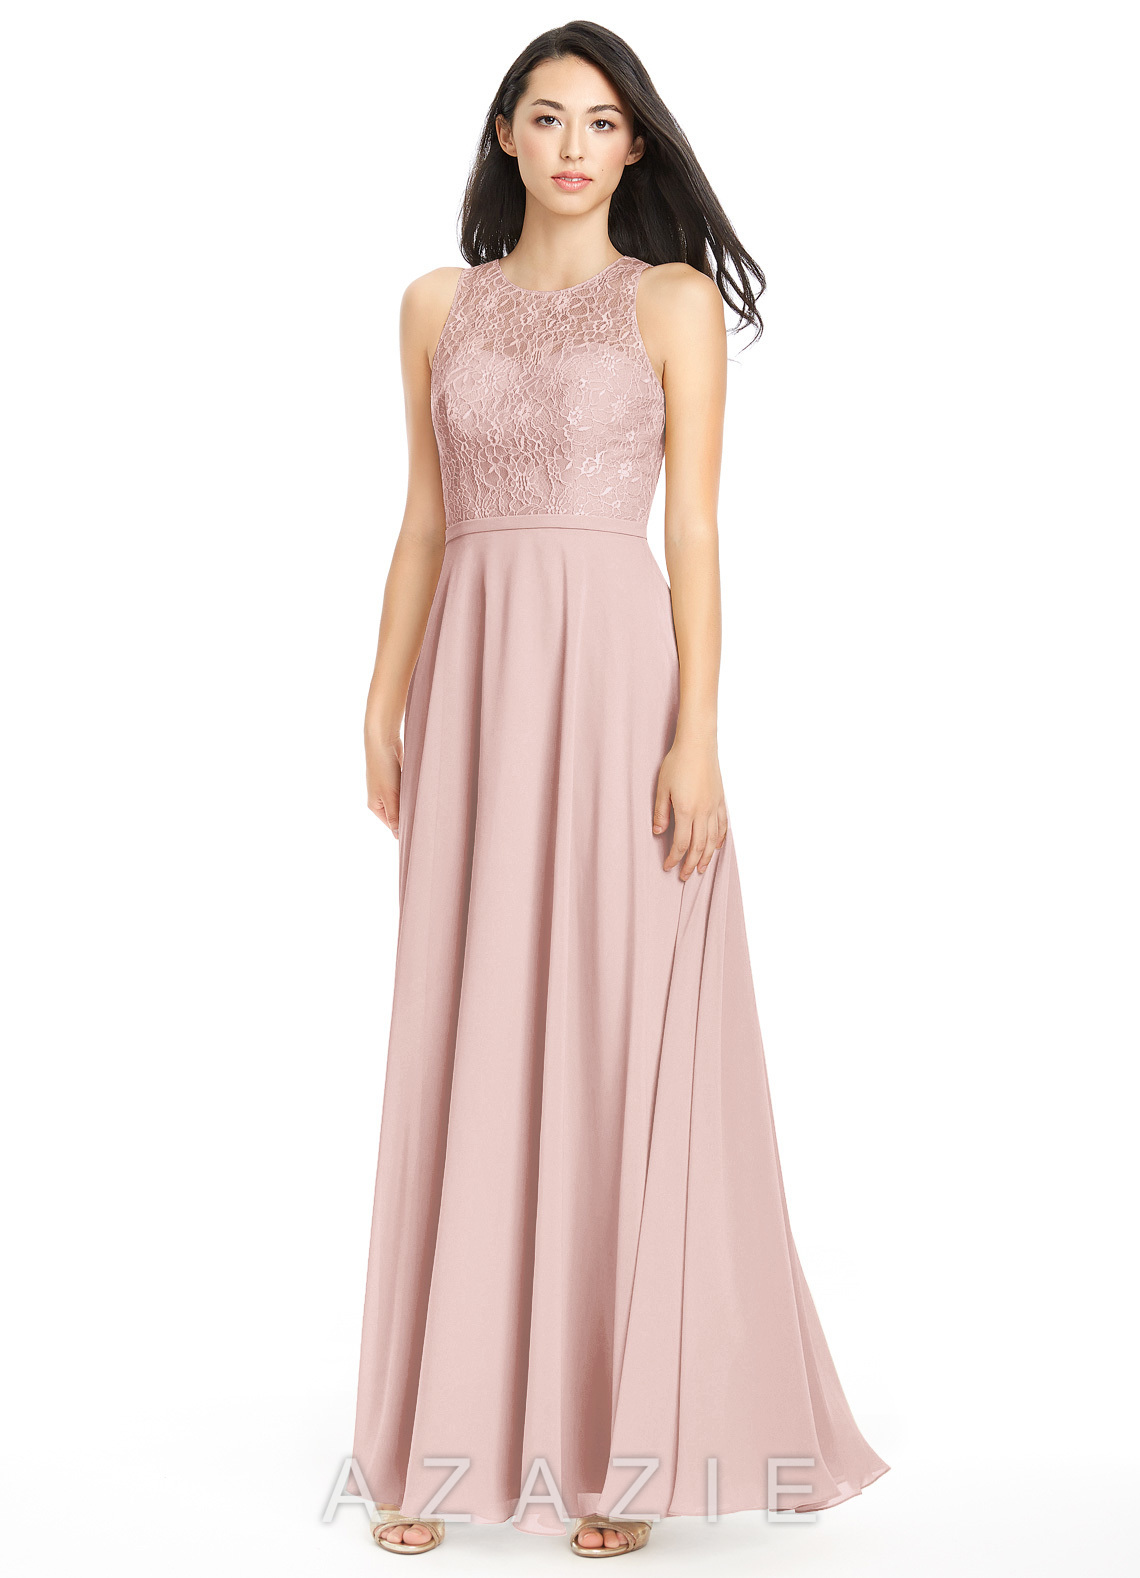 Dusty Rose Bridesmaid Dresses &amp- Dusty Rose Gowns - Azazie